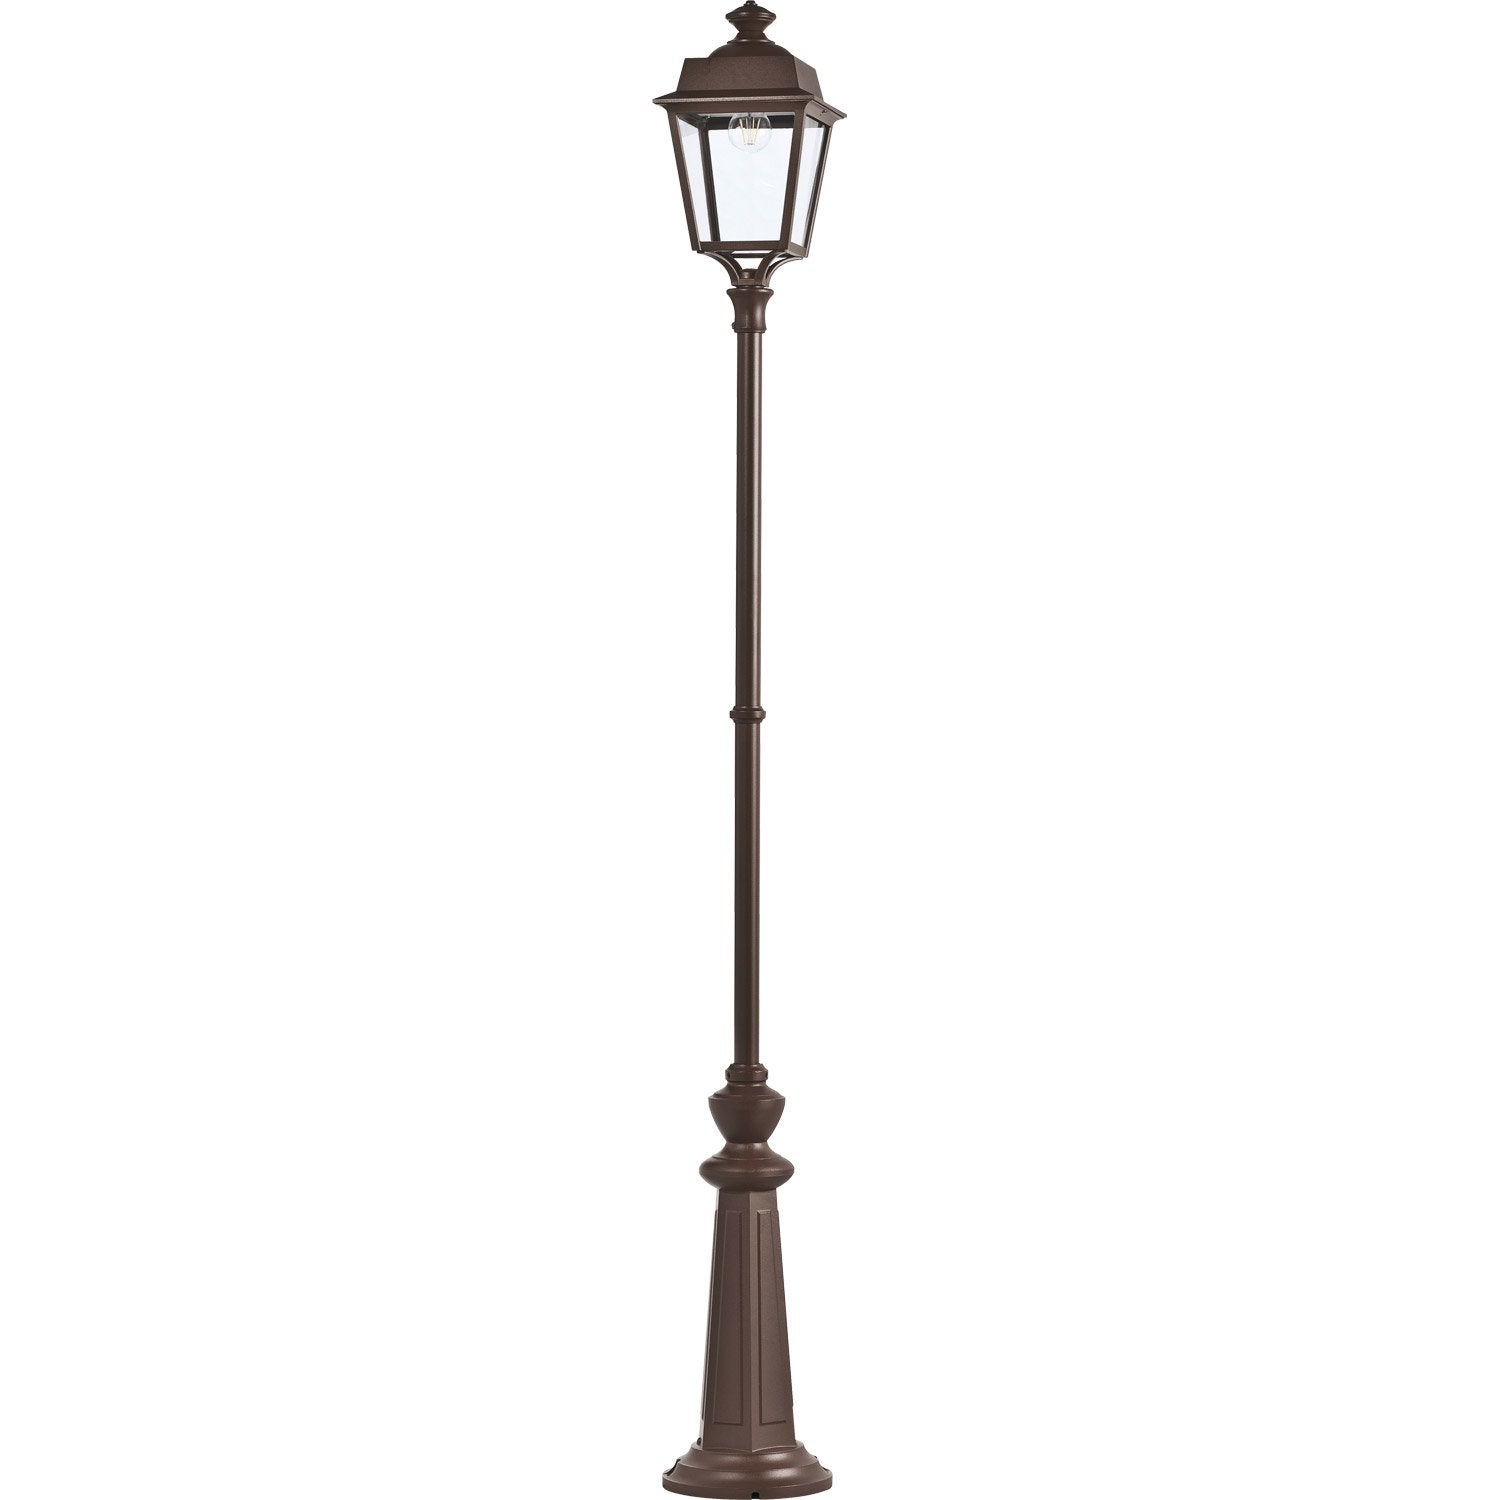 lampadaire ext rieur place des vosges e27 60 w rouille. Black Bedroom Furniture Sets. Home Design Ideas